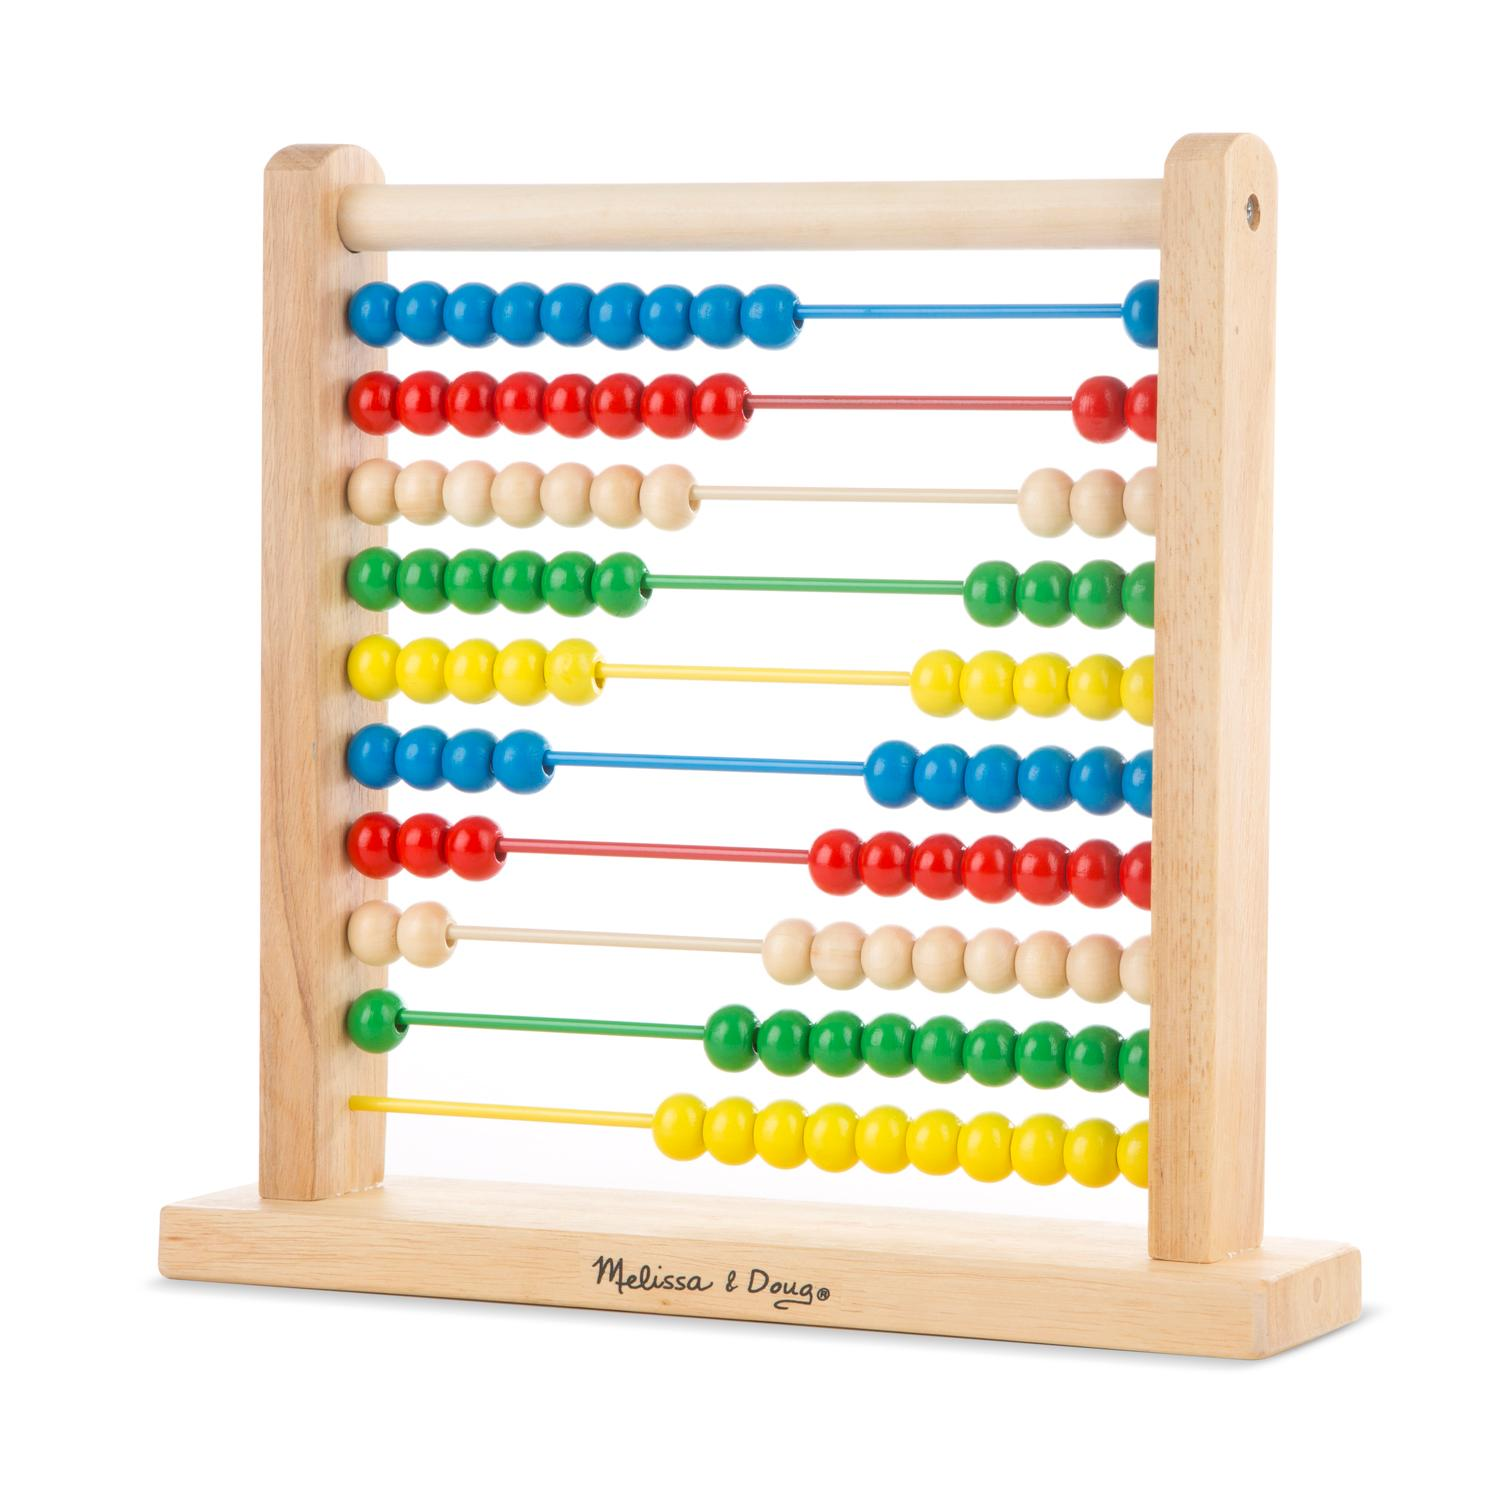 Melissa & Doug Wooden Abacus Toy Amazon Toys & Games